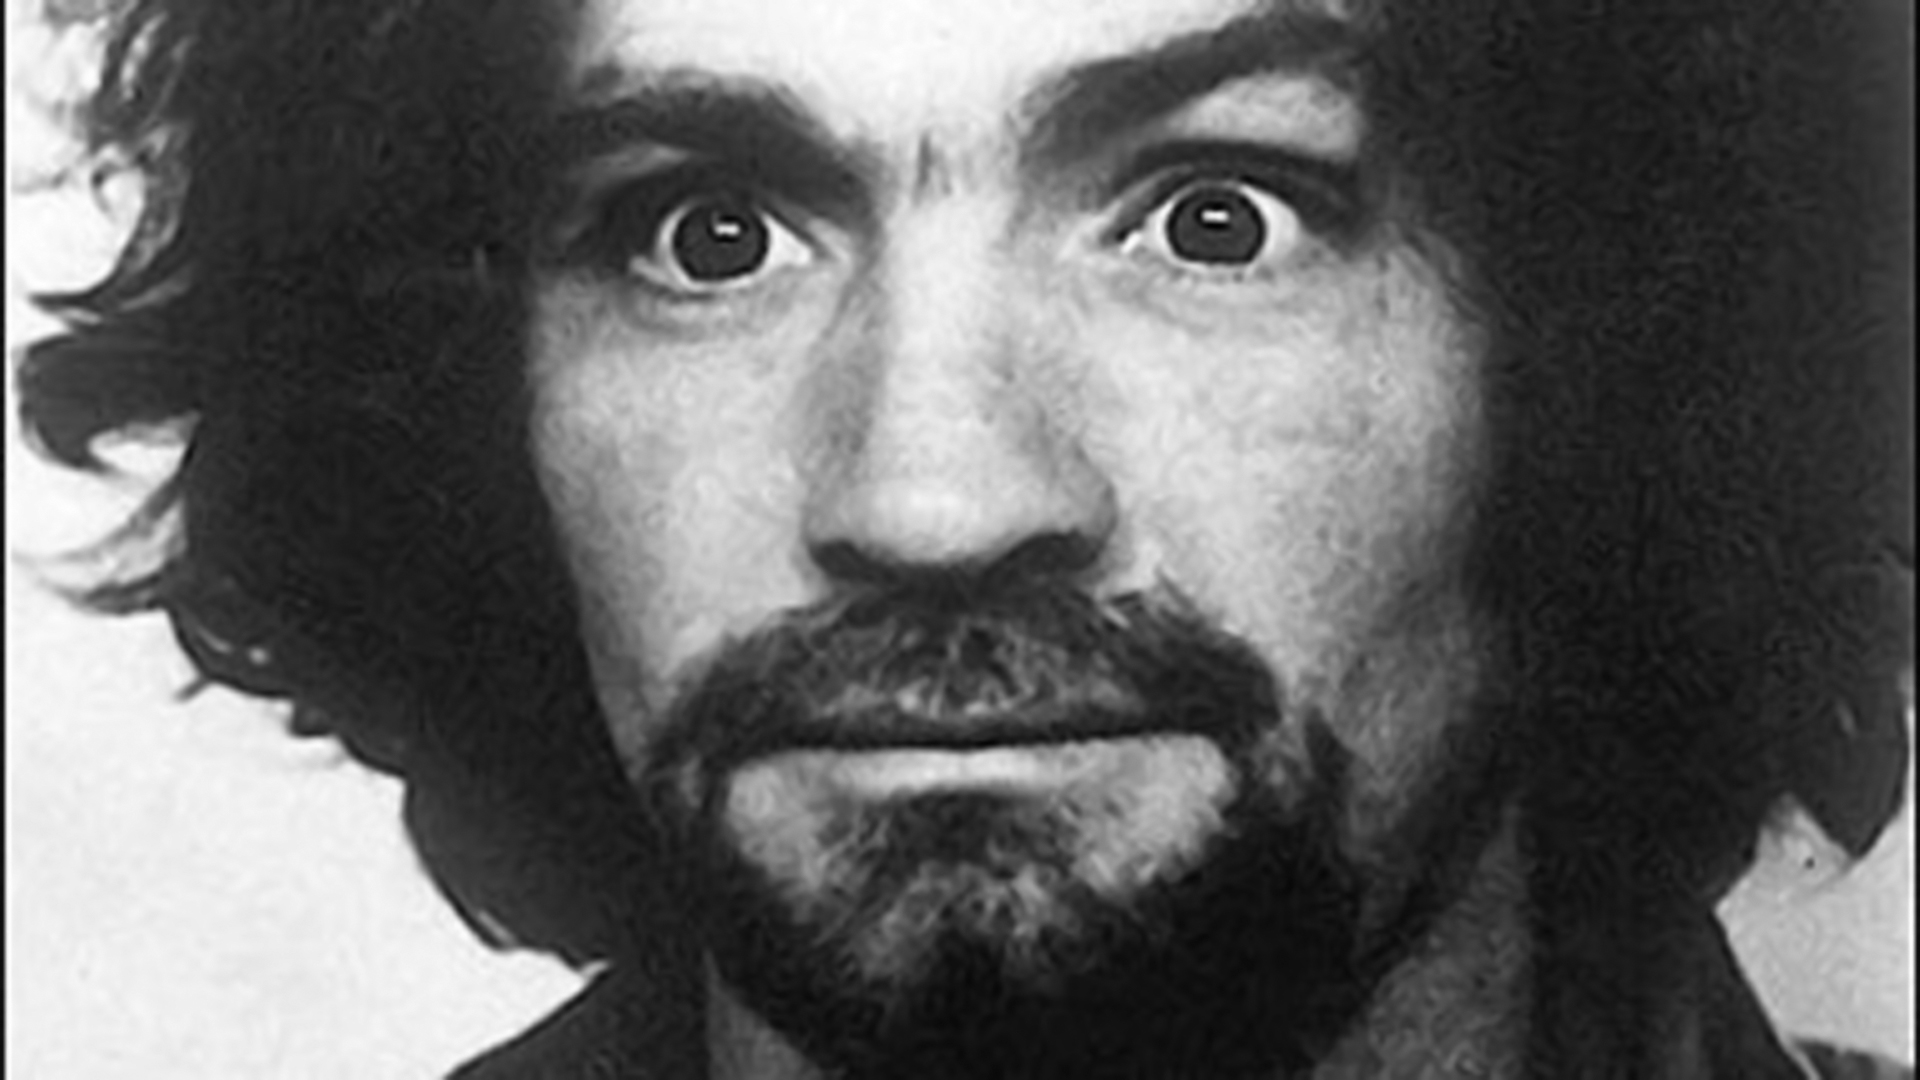 Charles Manson is seen in a booking photo from the Ventura County Sheriff's Department in 1968.